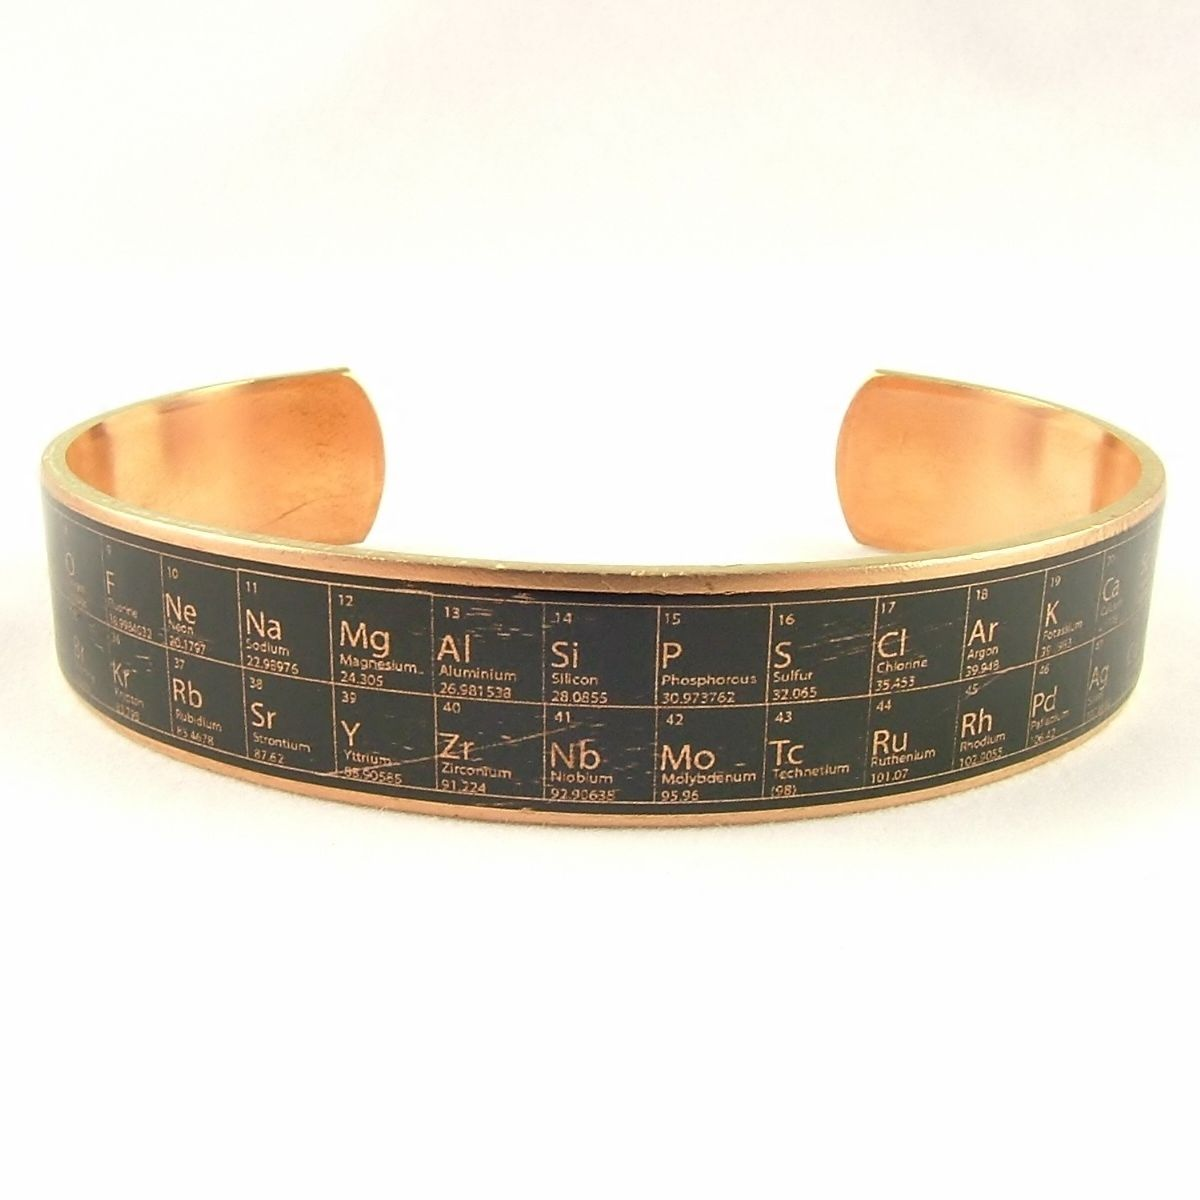 Periodic table of elements skinny cuff jezebel charms periodic table of elements skinny cuff gamestrikefo Gallery